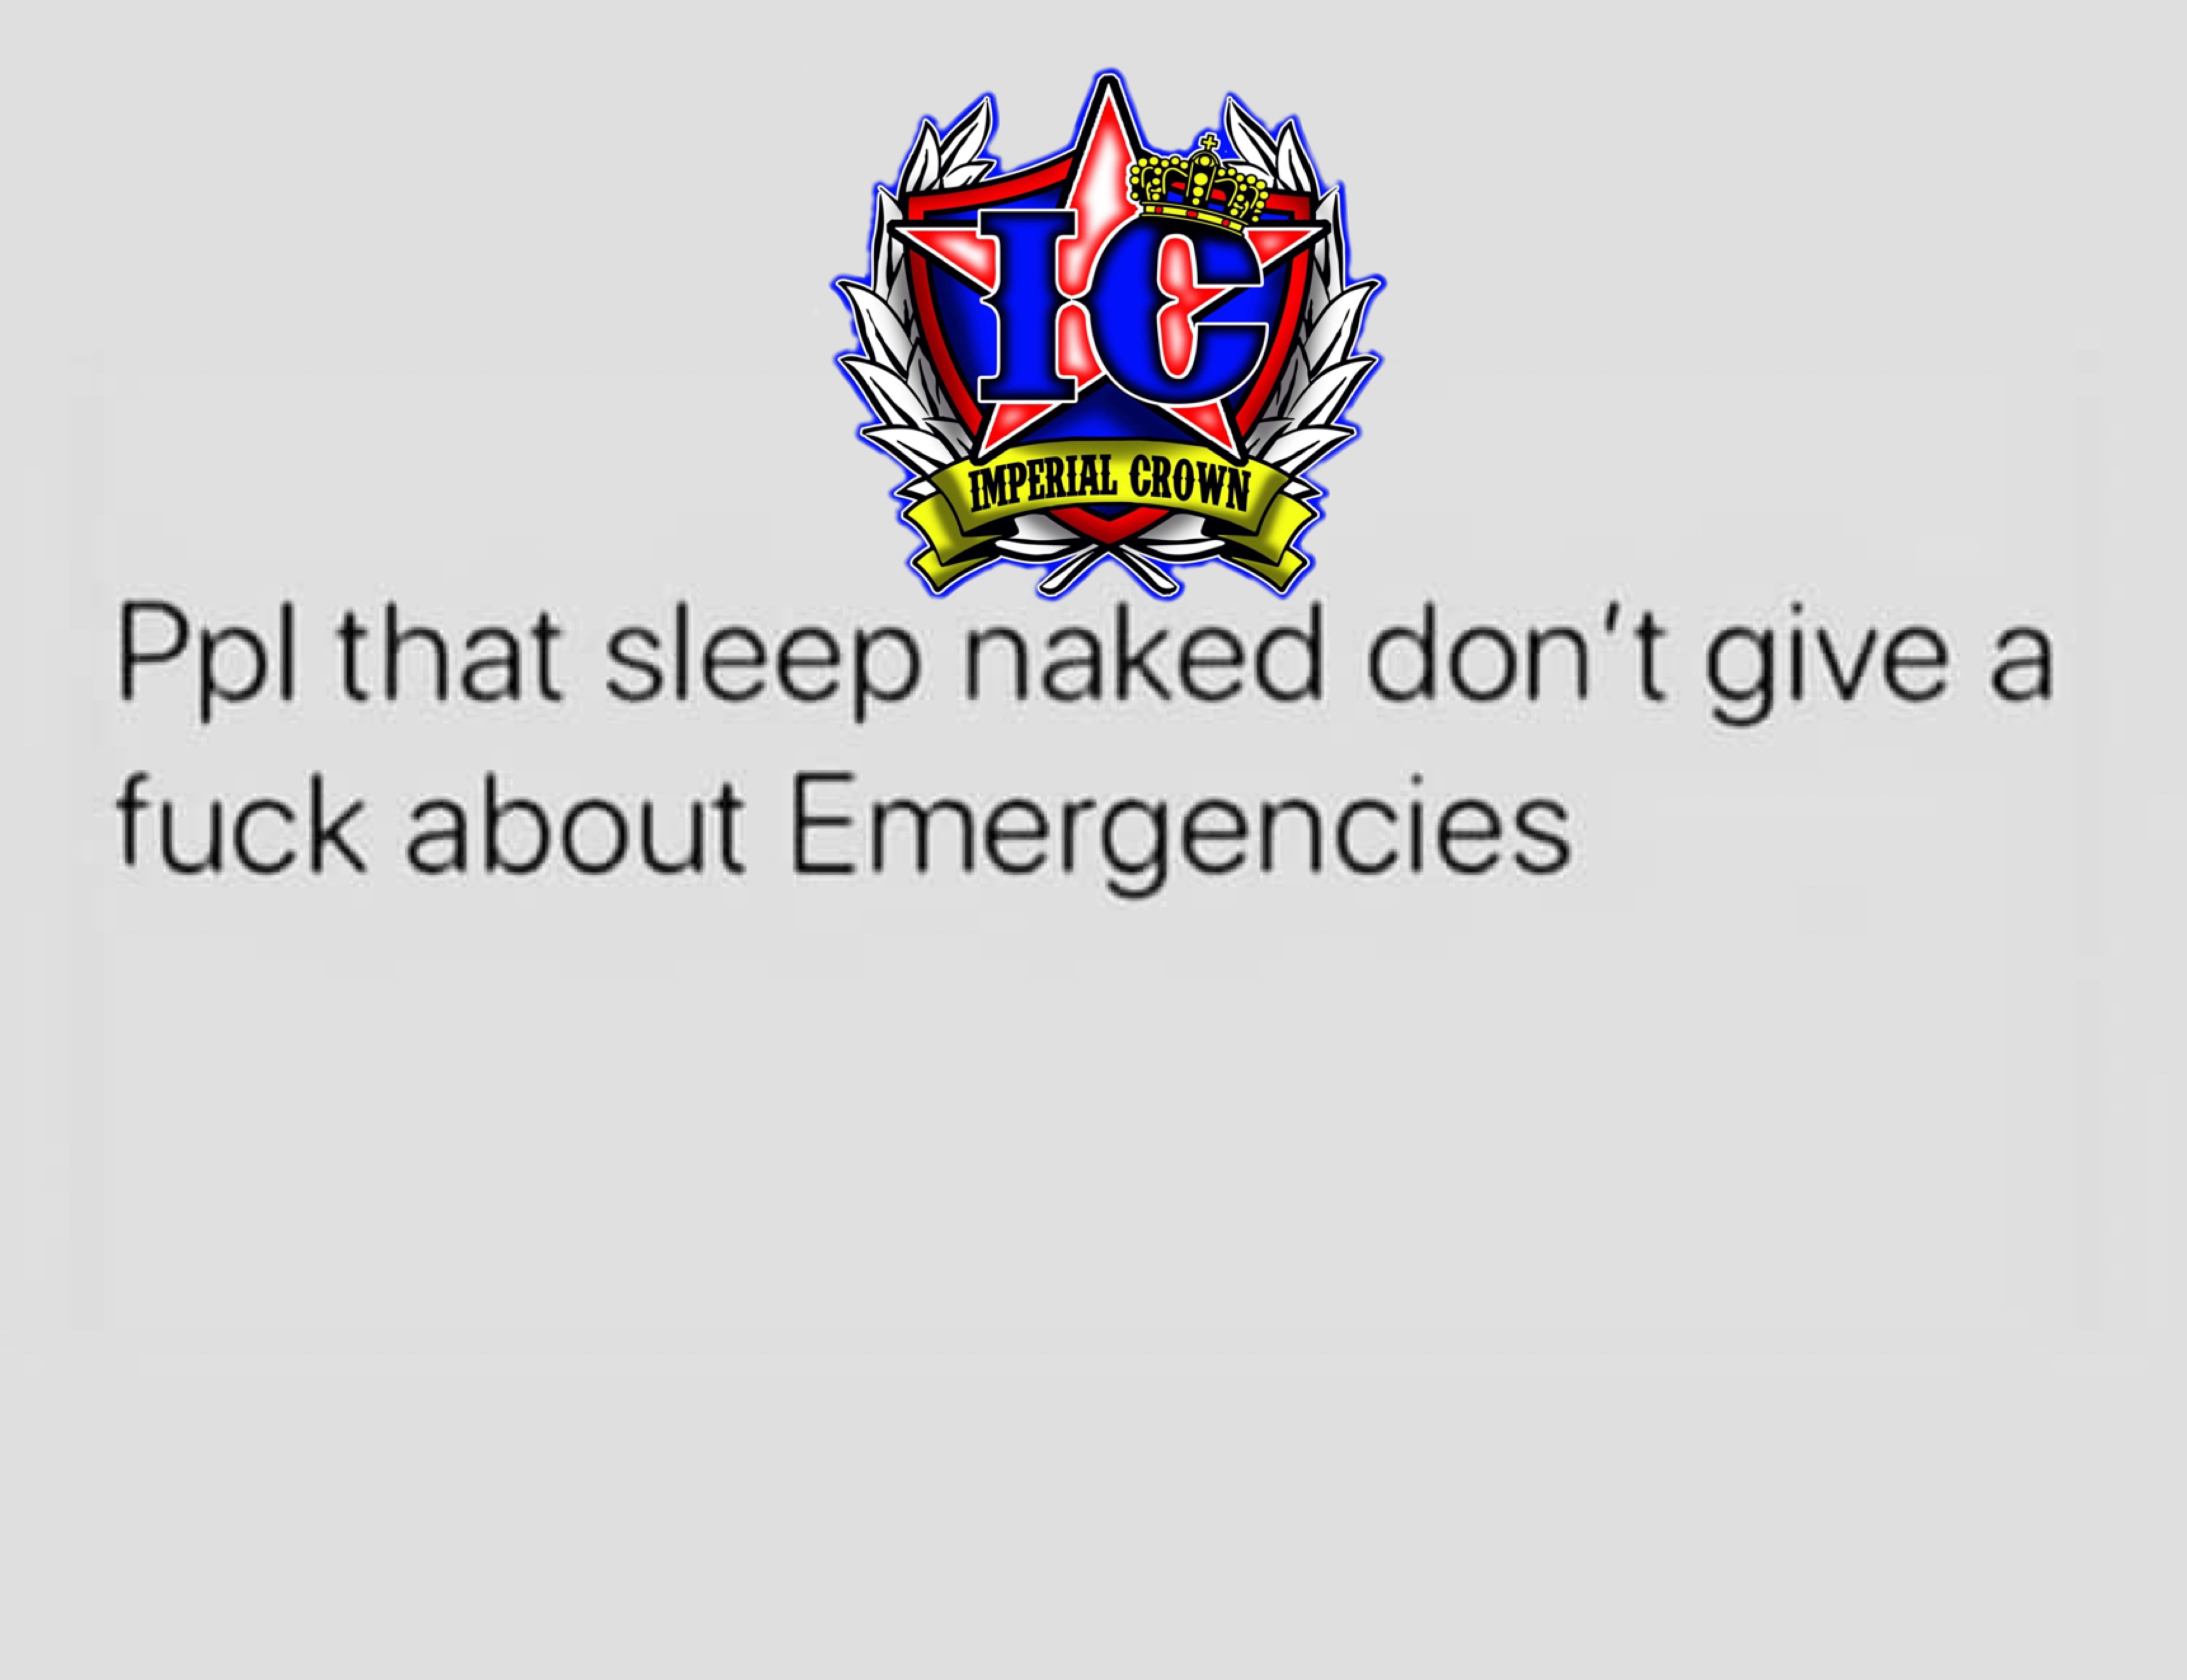 Ppl that sleep naked don't give a fuck about emergencies